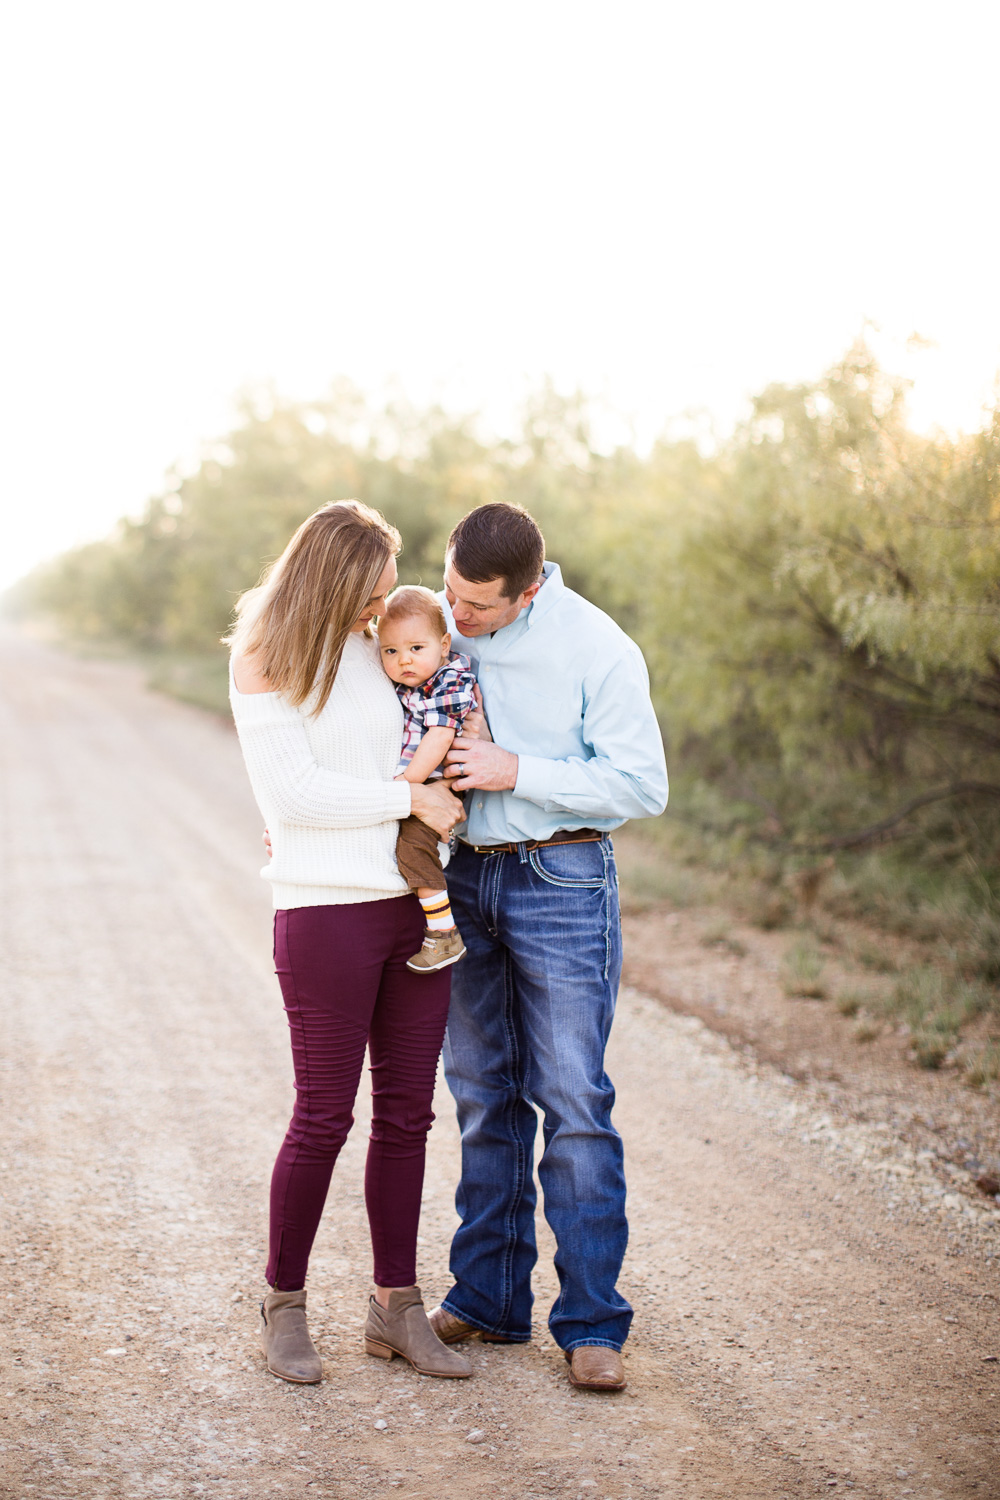 Abilene-Family-Photographer-JJMT-2.jpg